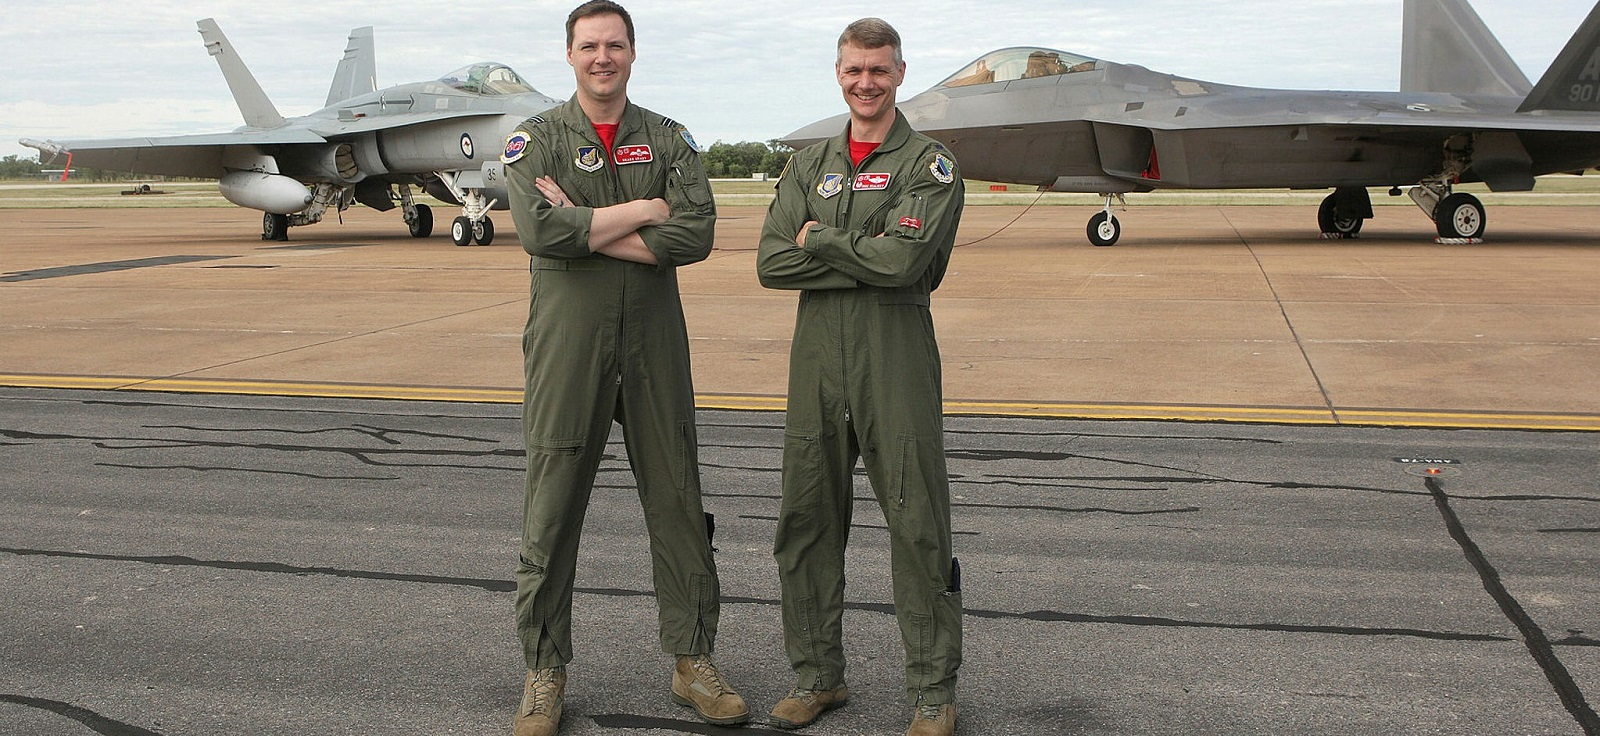 Ft Lt William Grady, 90th Fighter Squadron USAF (left) and USAF Lt Cnl David Skalicky  (Photo: Aust Defence Image Library)